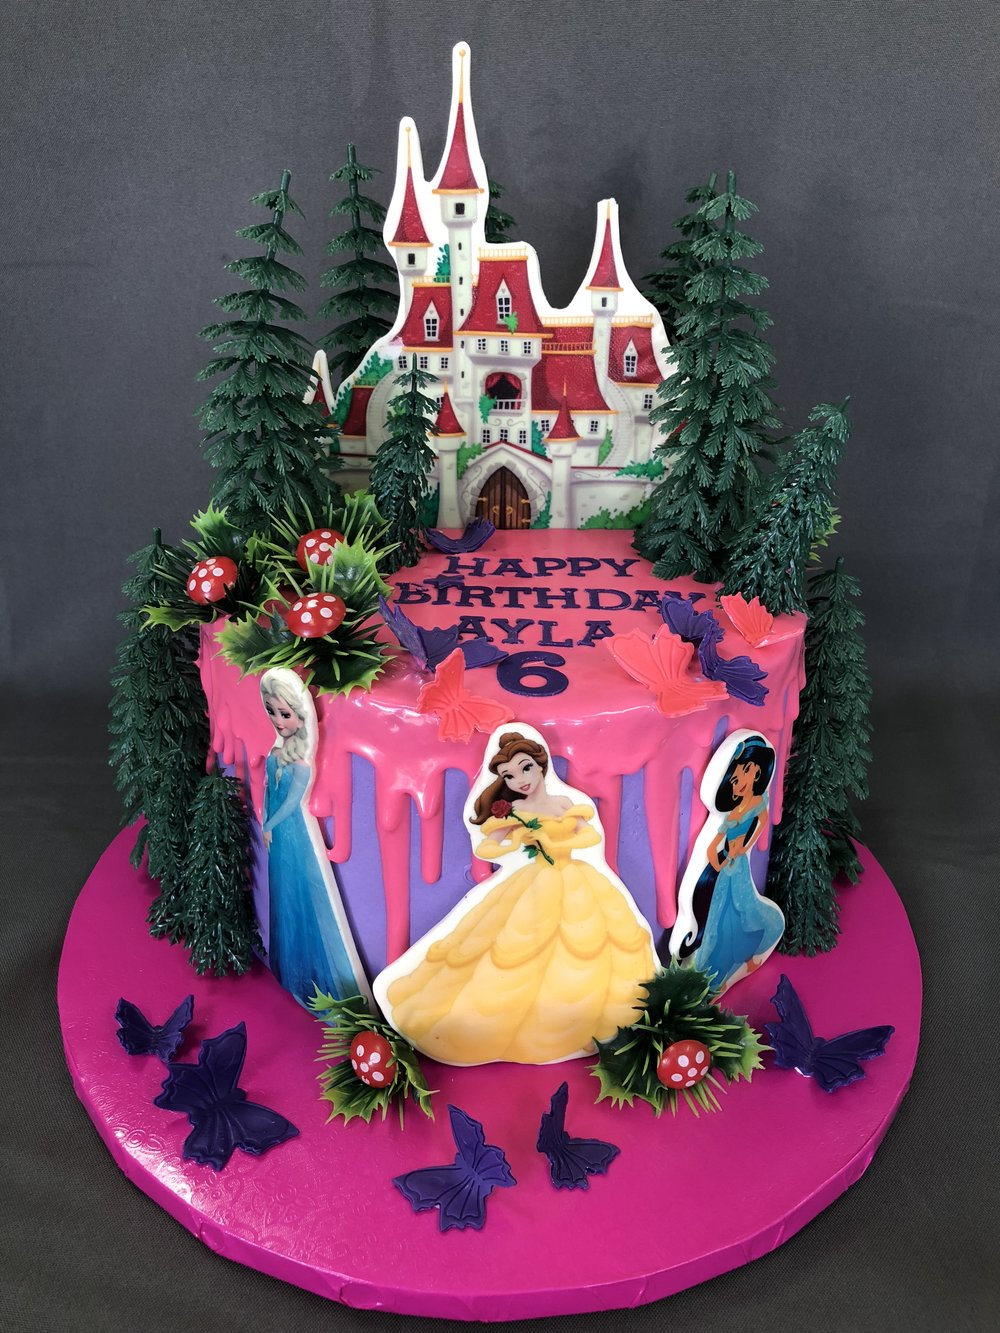 Best Princess Birthday Cake New Jersey